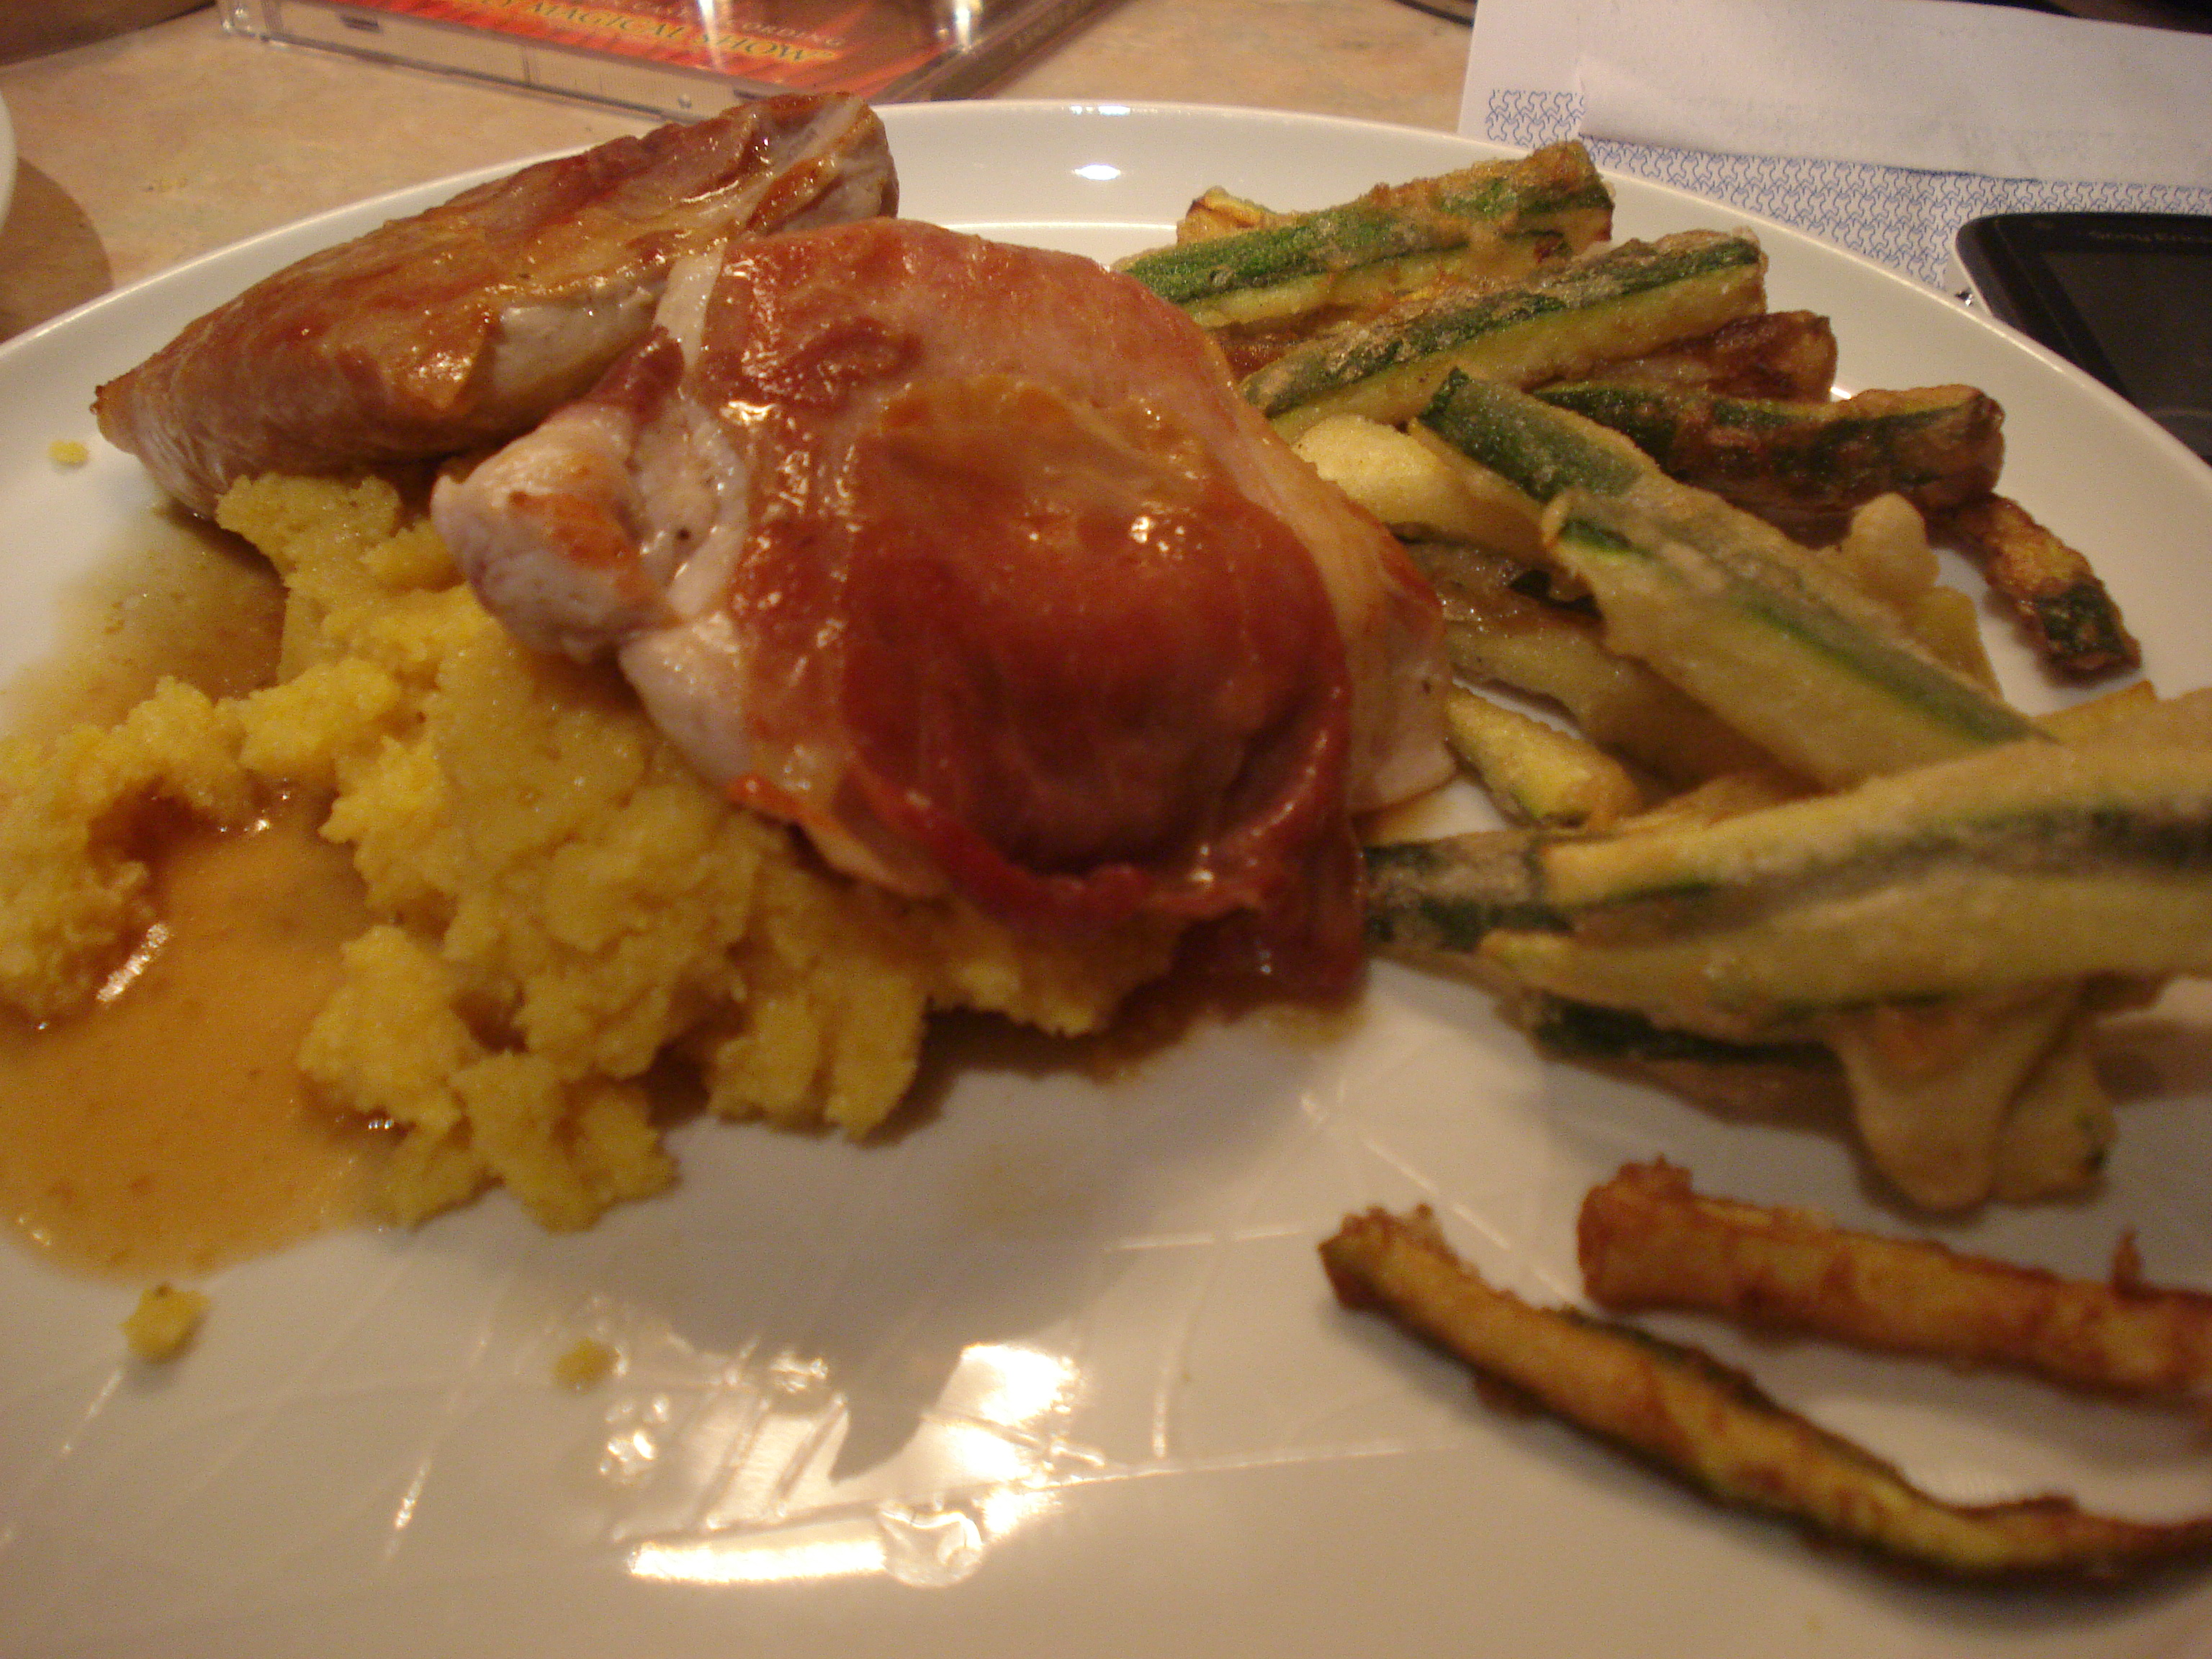 turkey and veal saltimbocca with polenta and courgette fries